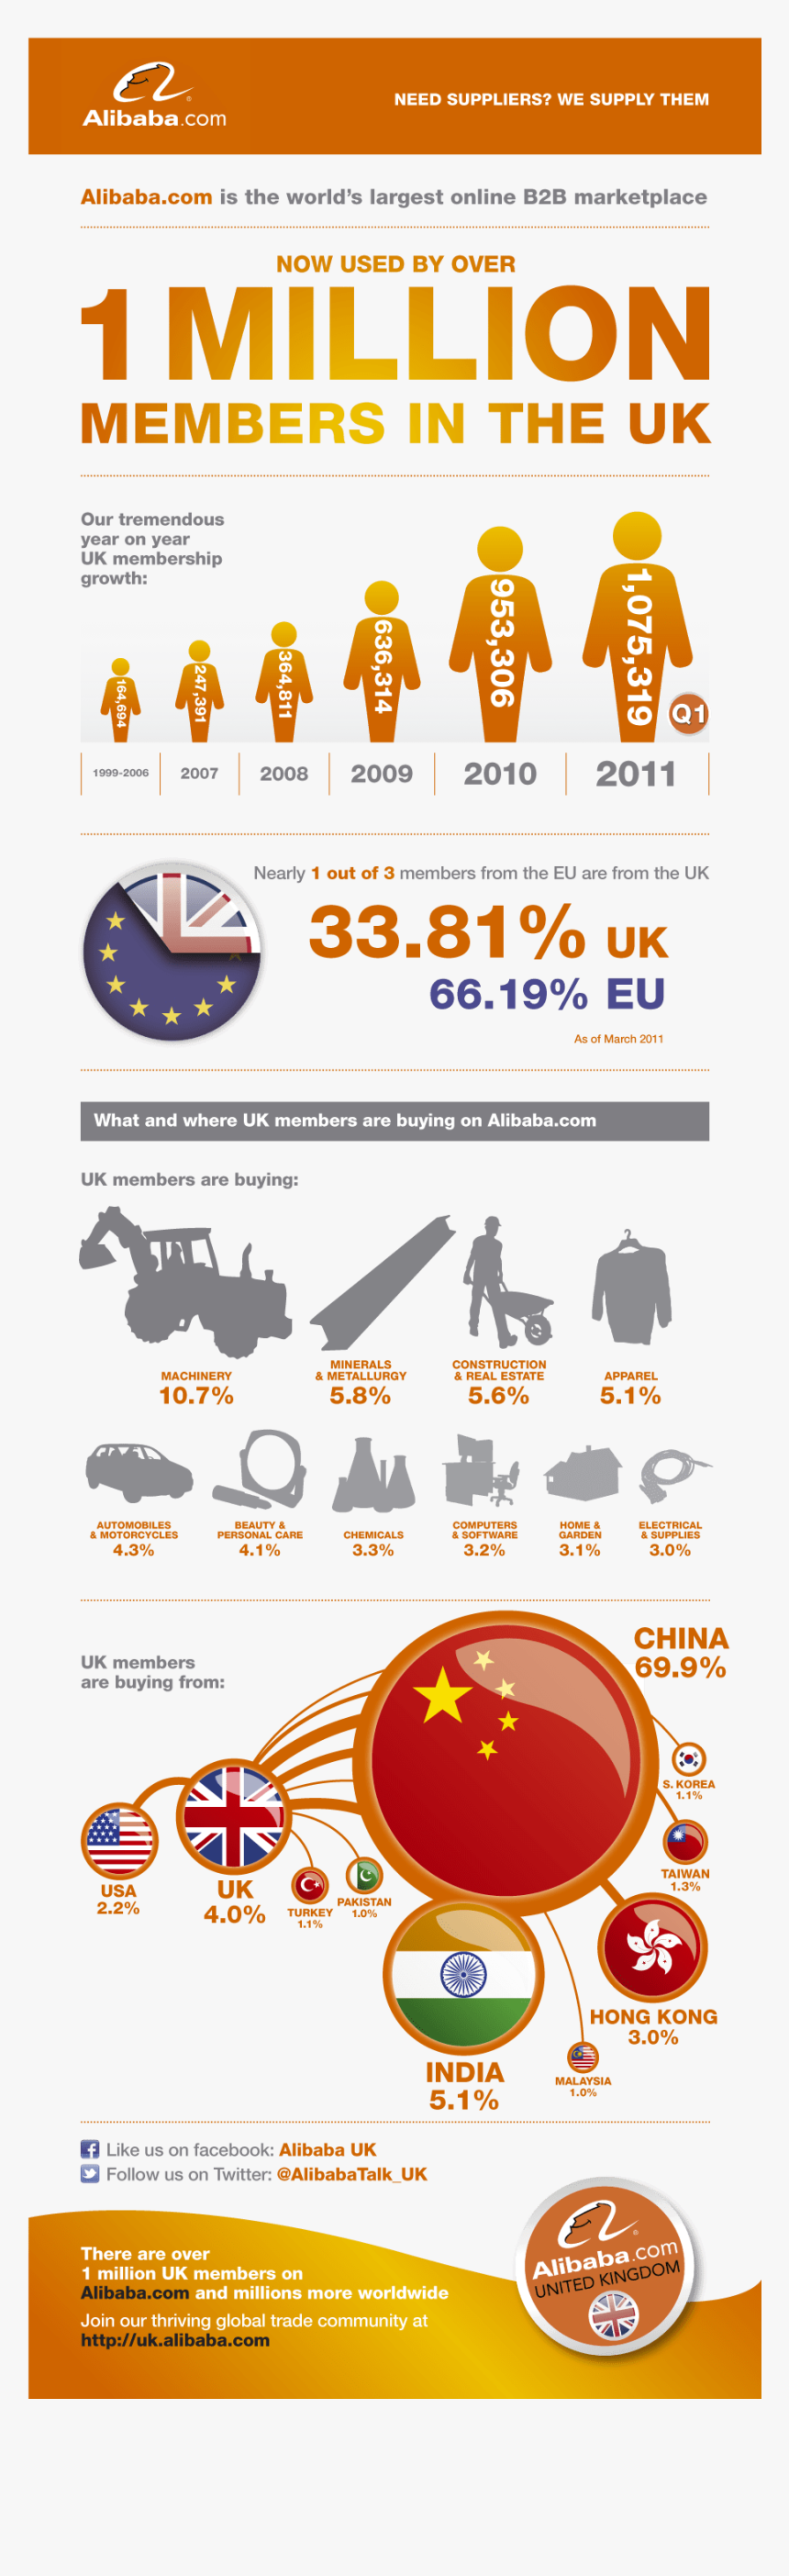 Alibaba Infographic - Will 1 Million Buy You Infographic, HD Png Download, Free Download